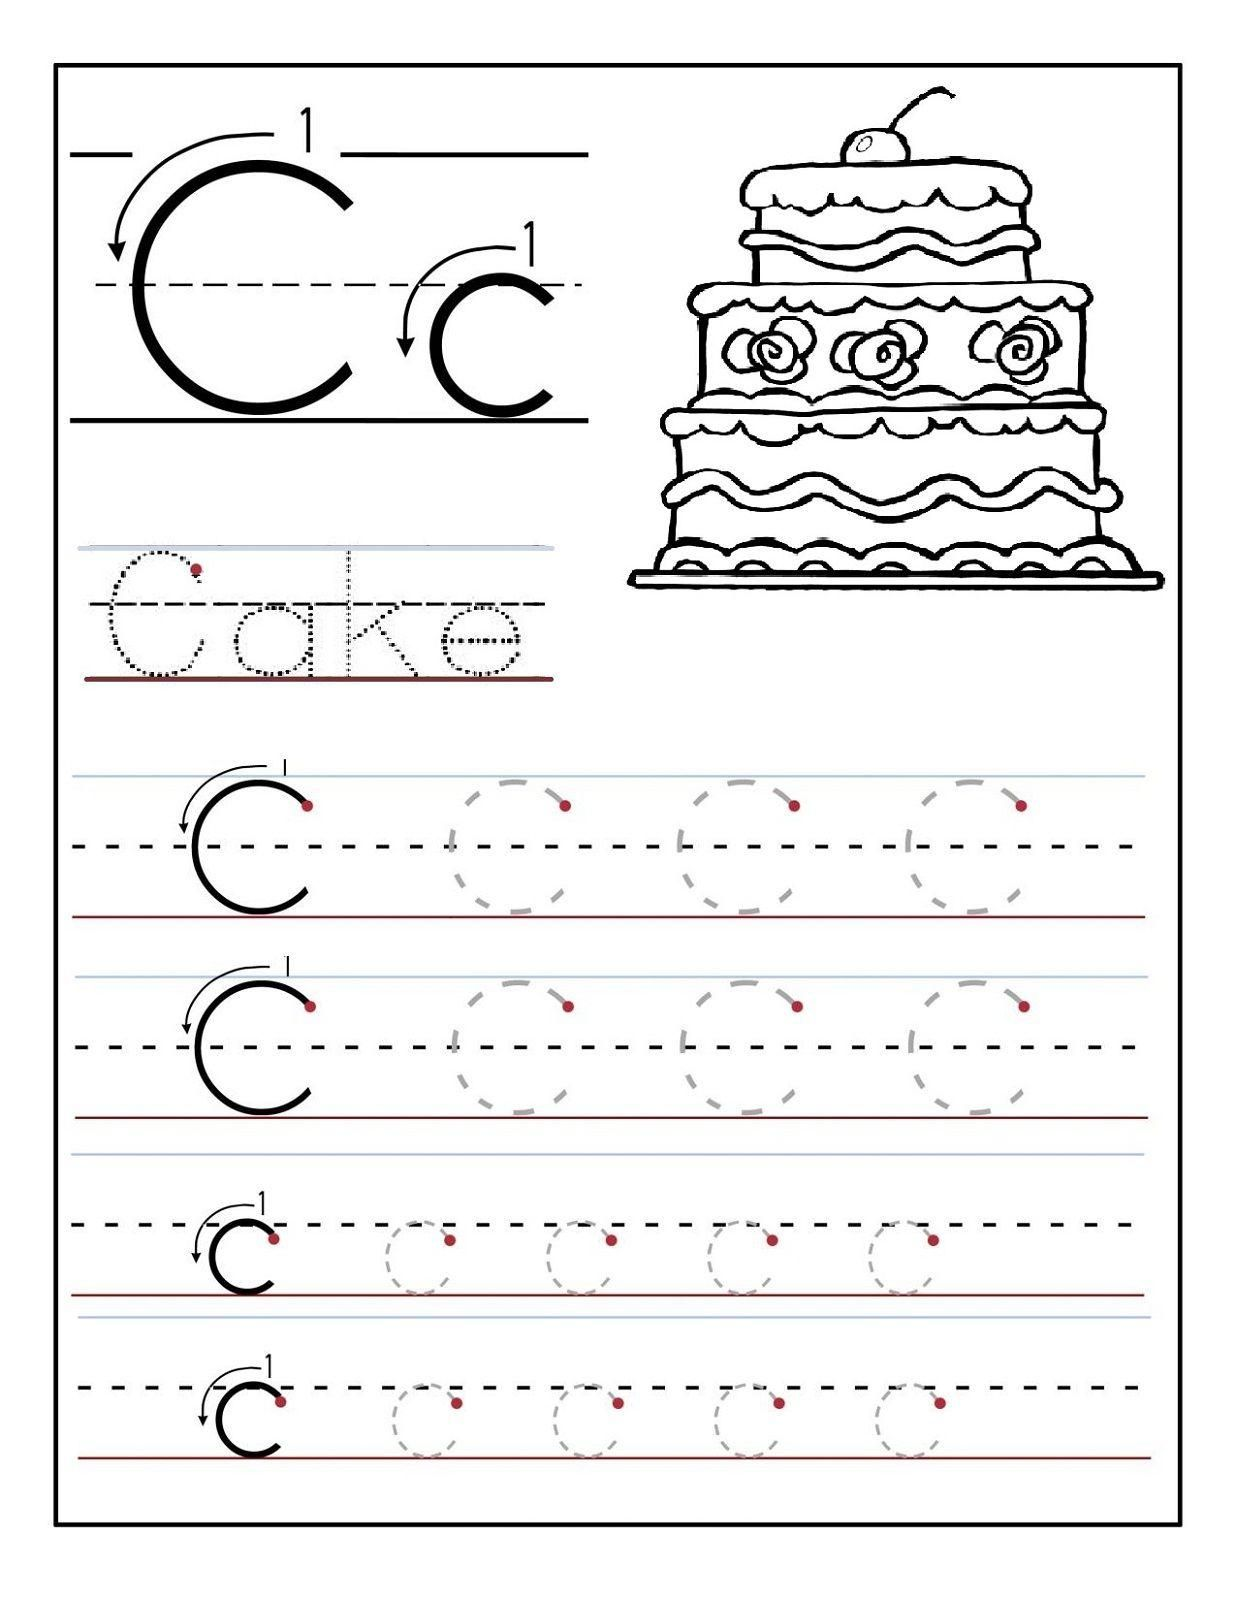 Practice Letter A Worksheets In